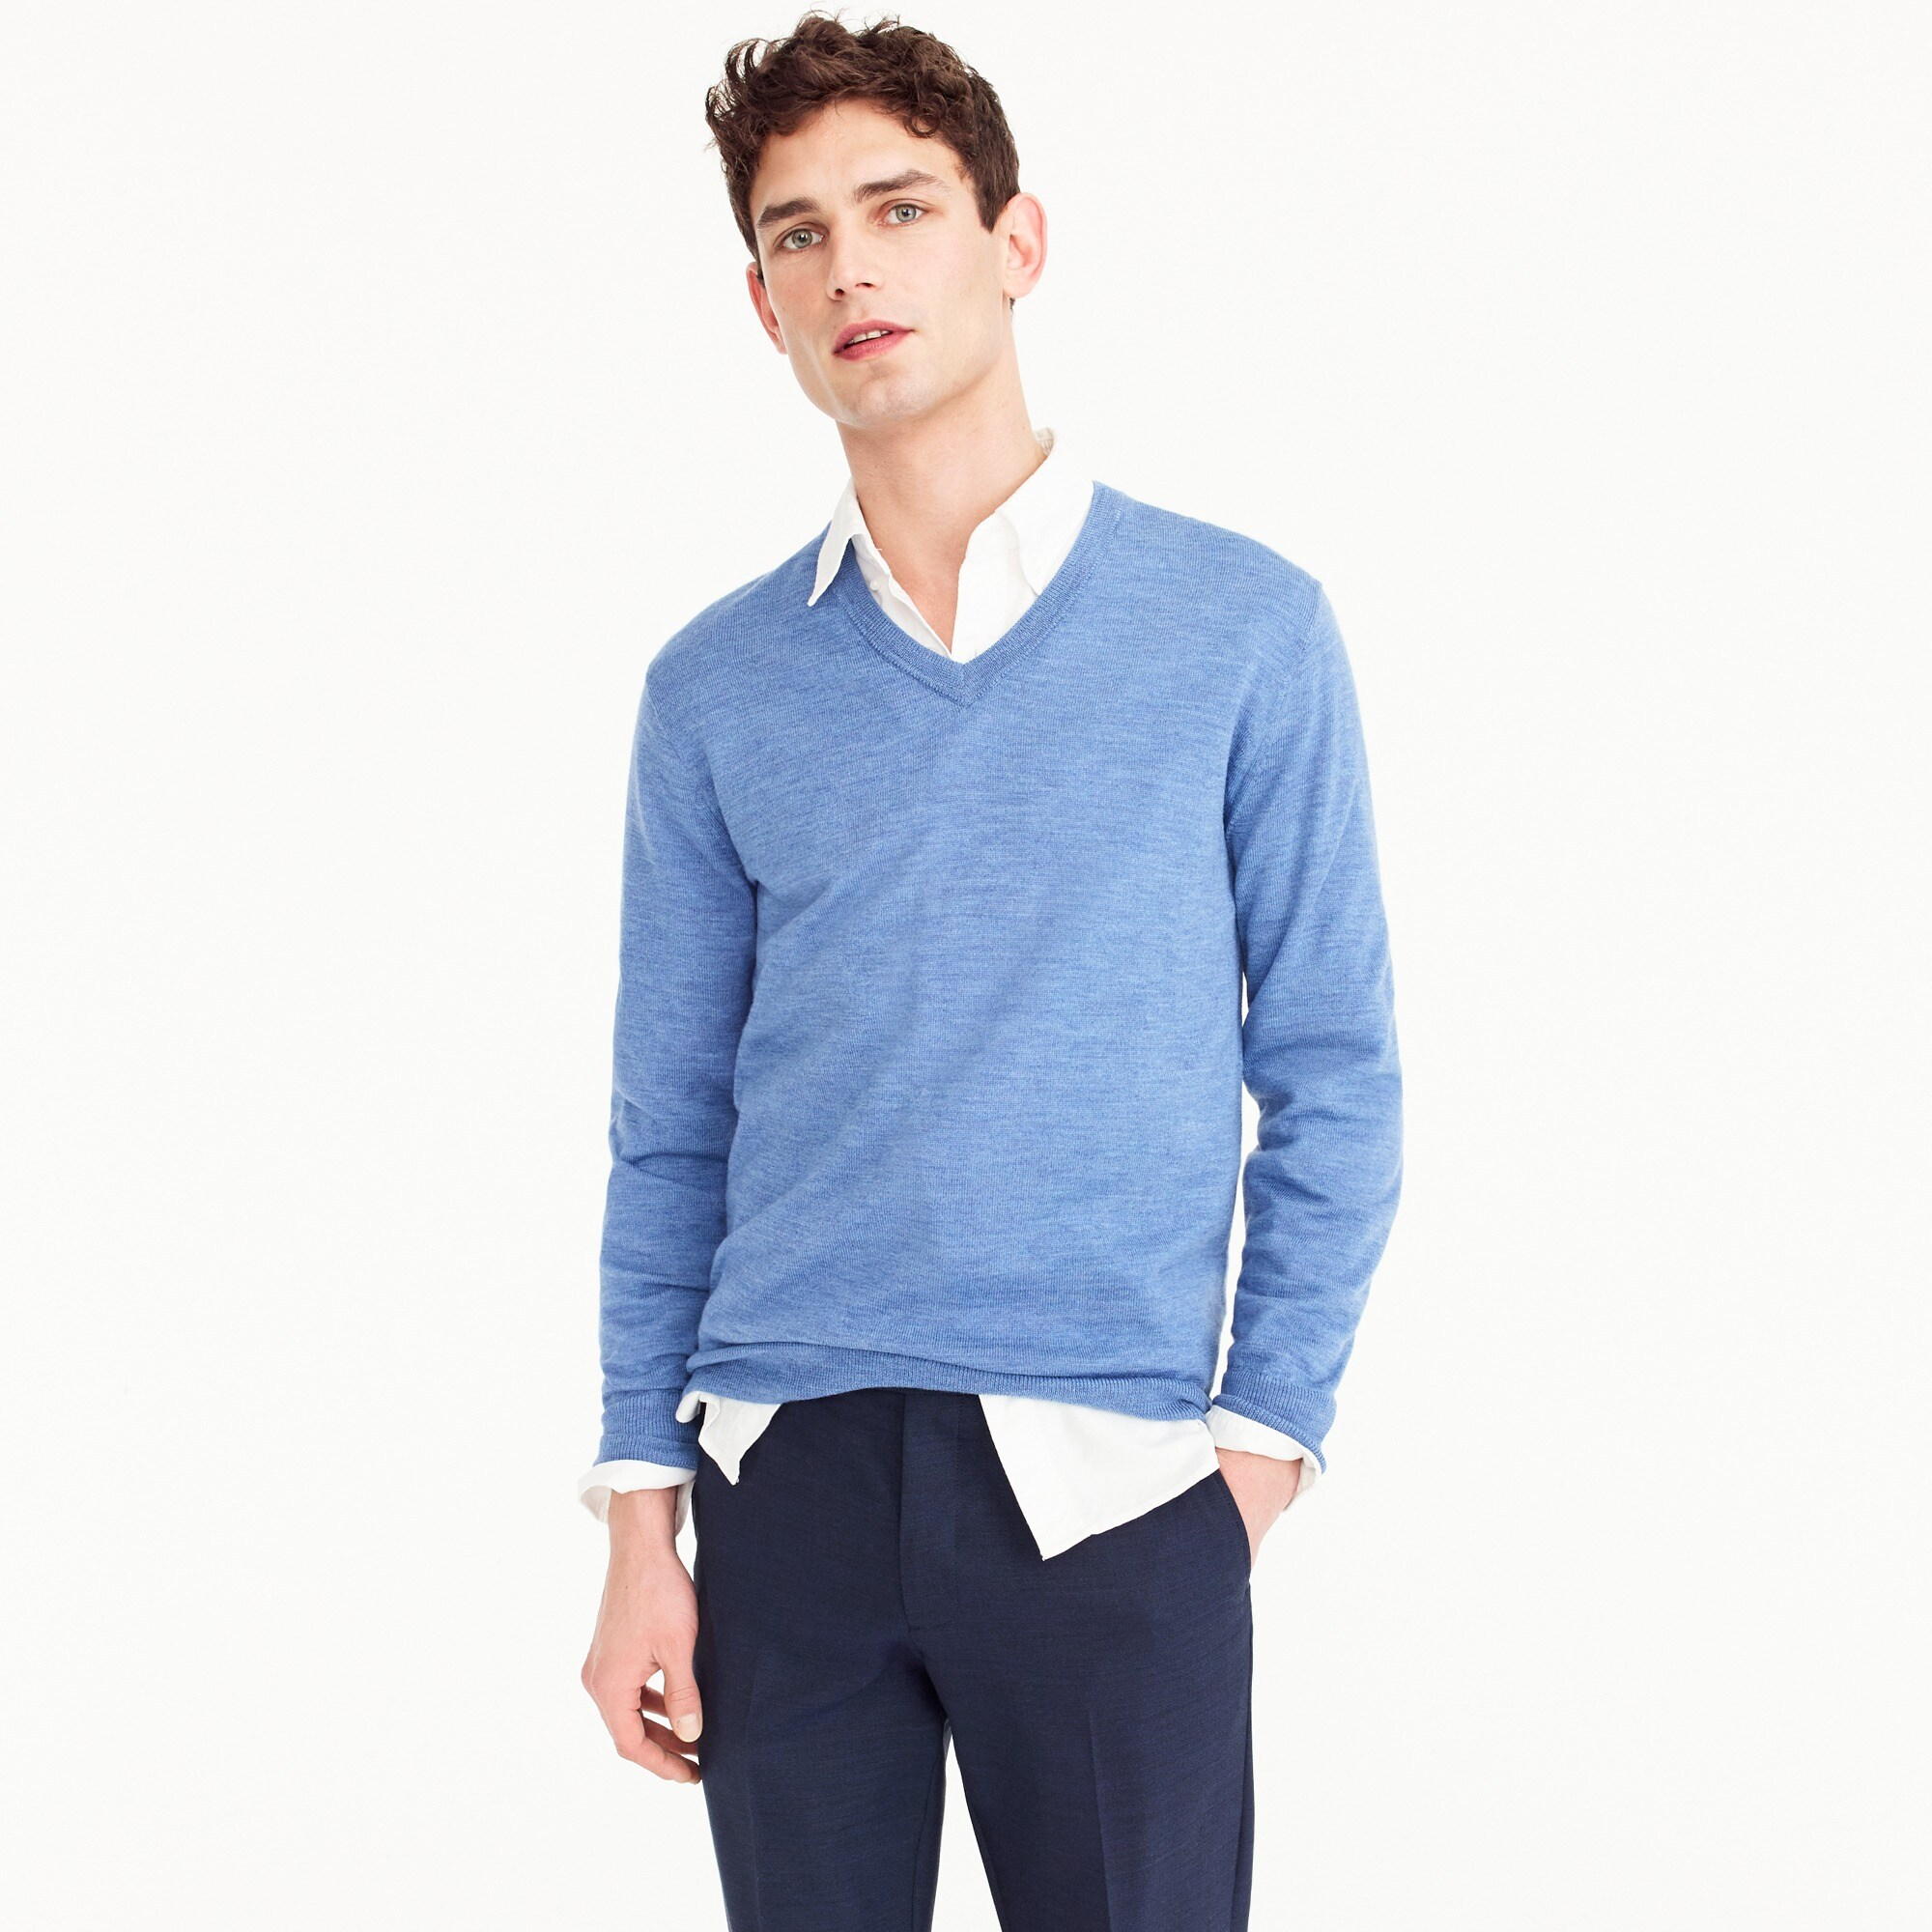 men's tall italian merino wool v-neck sweater - men's sweaters